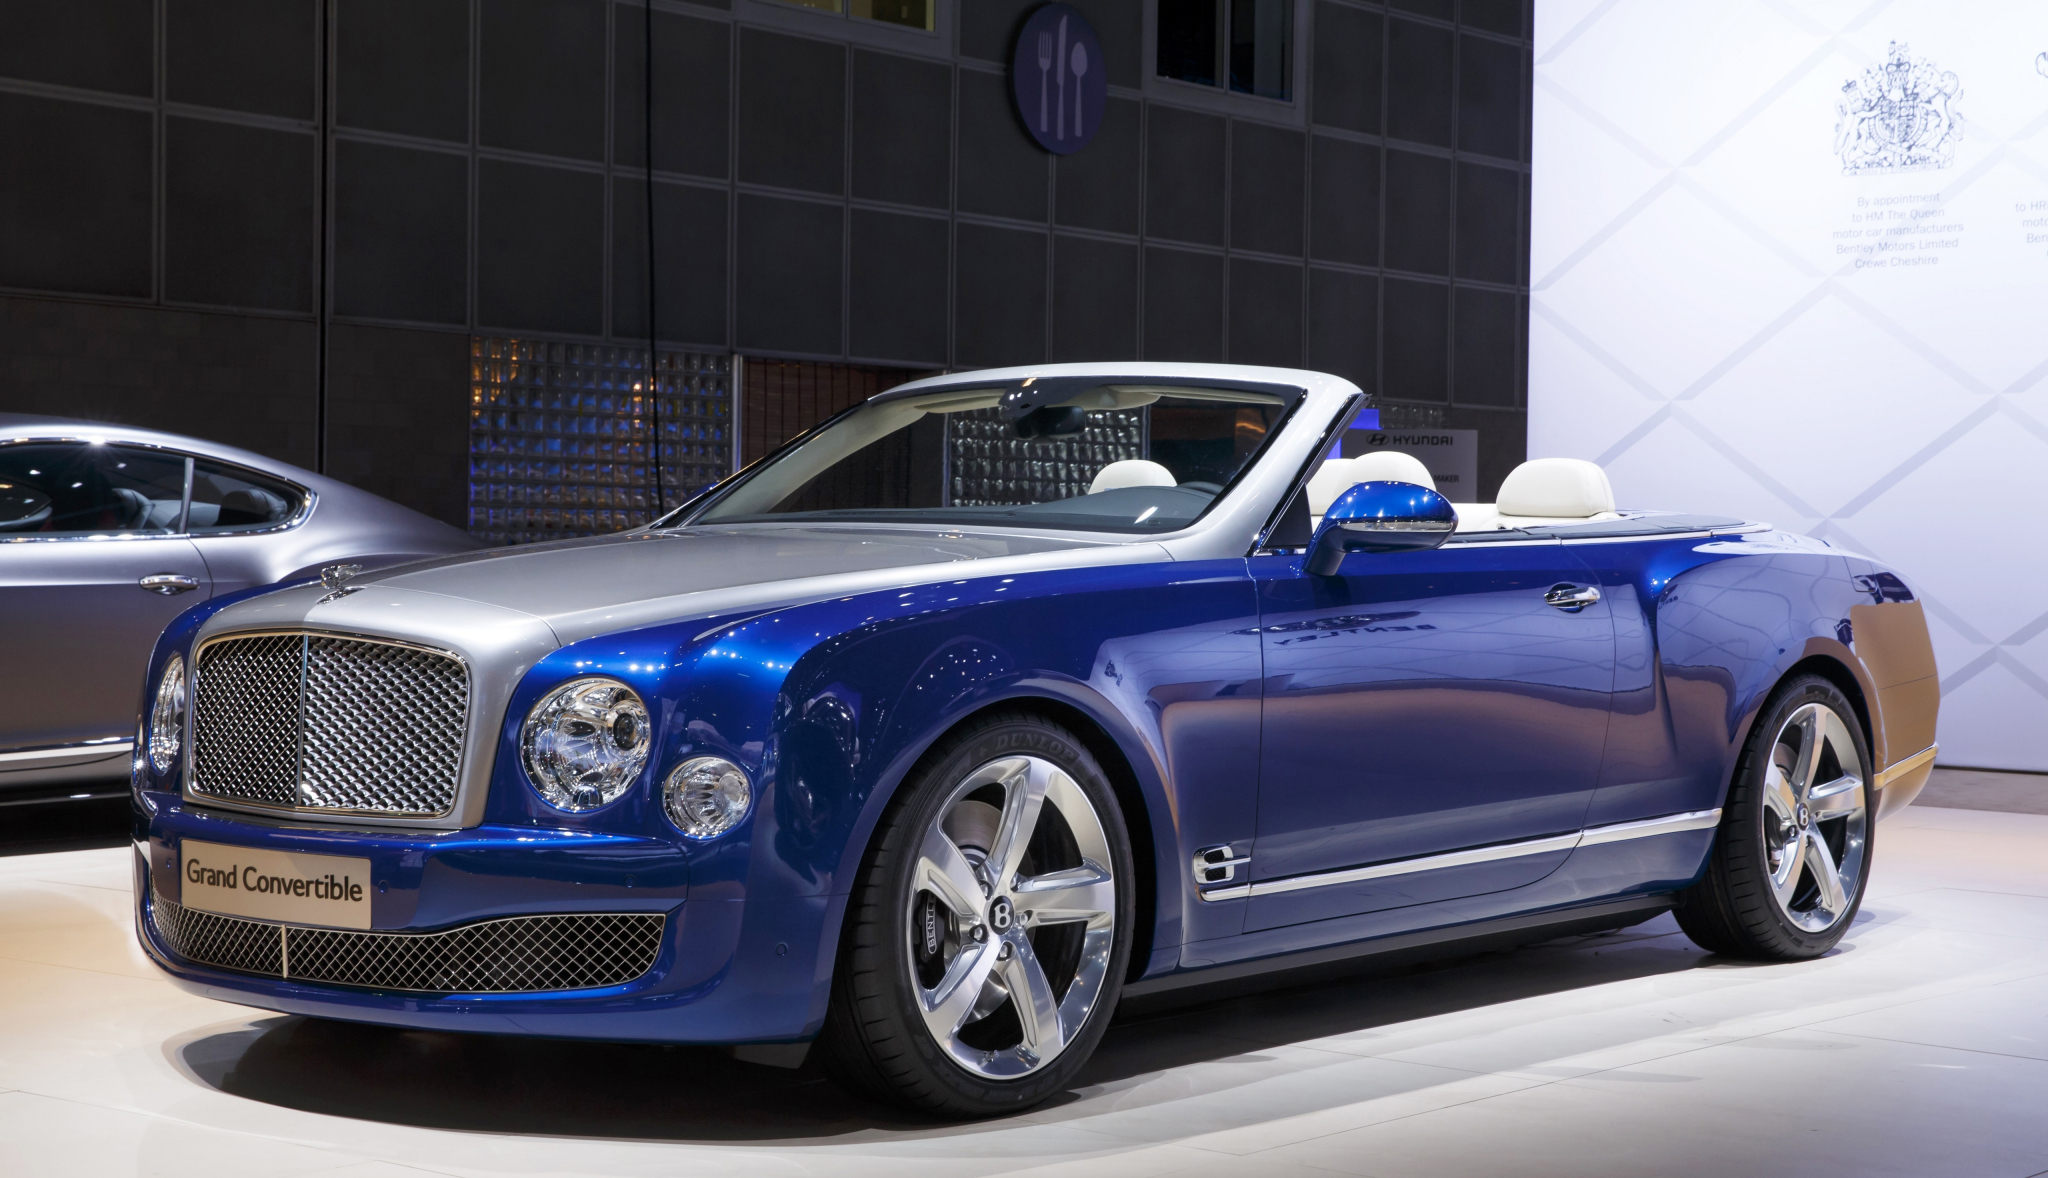 Bentley Grand Convertible HD Wallpapers Free Download